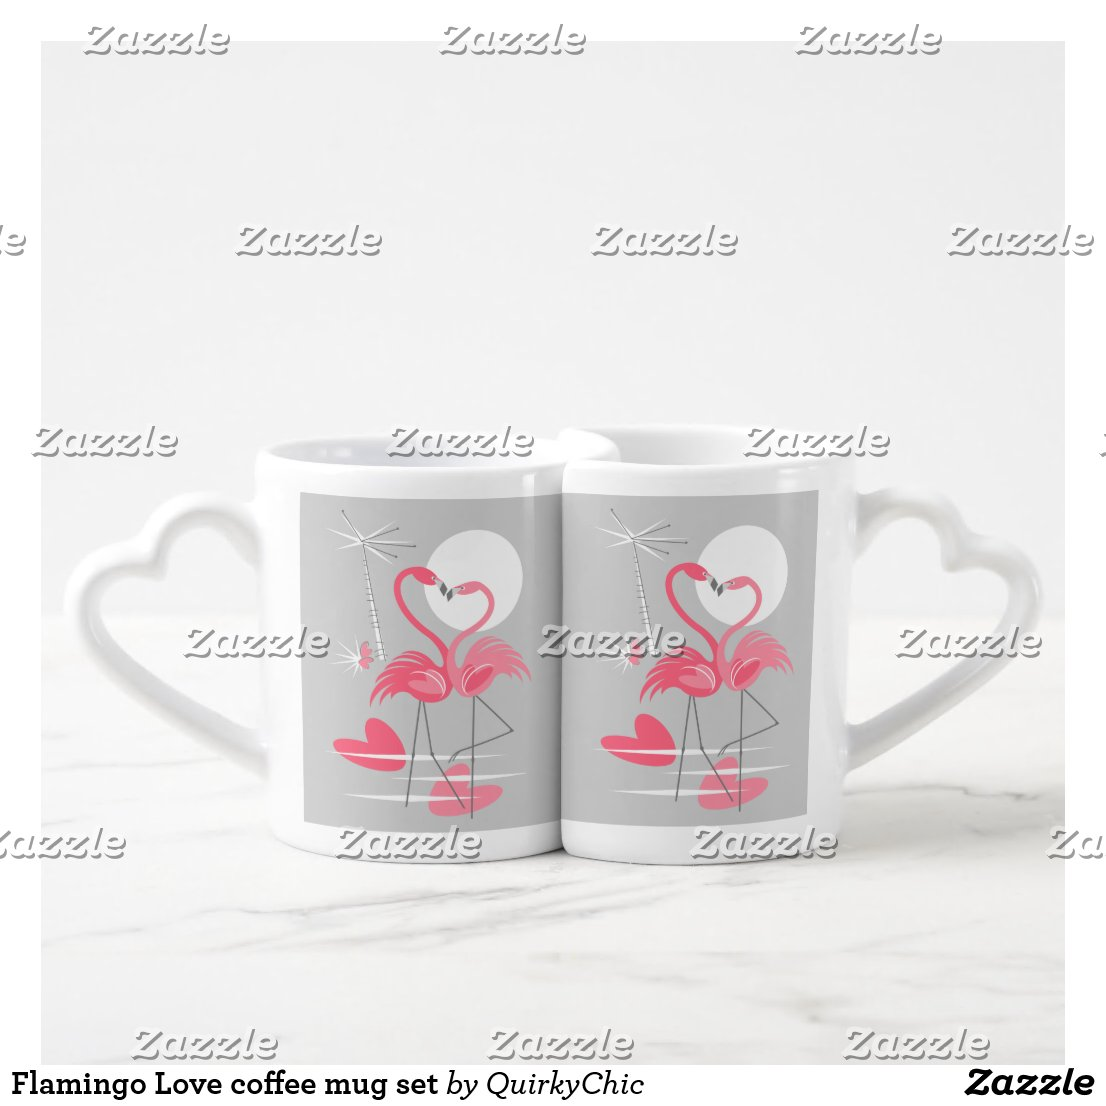 Flamingo Love coffee mug set